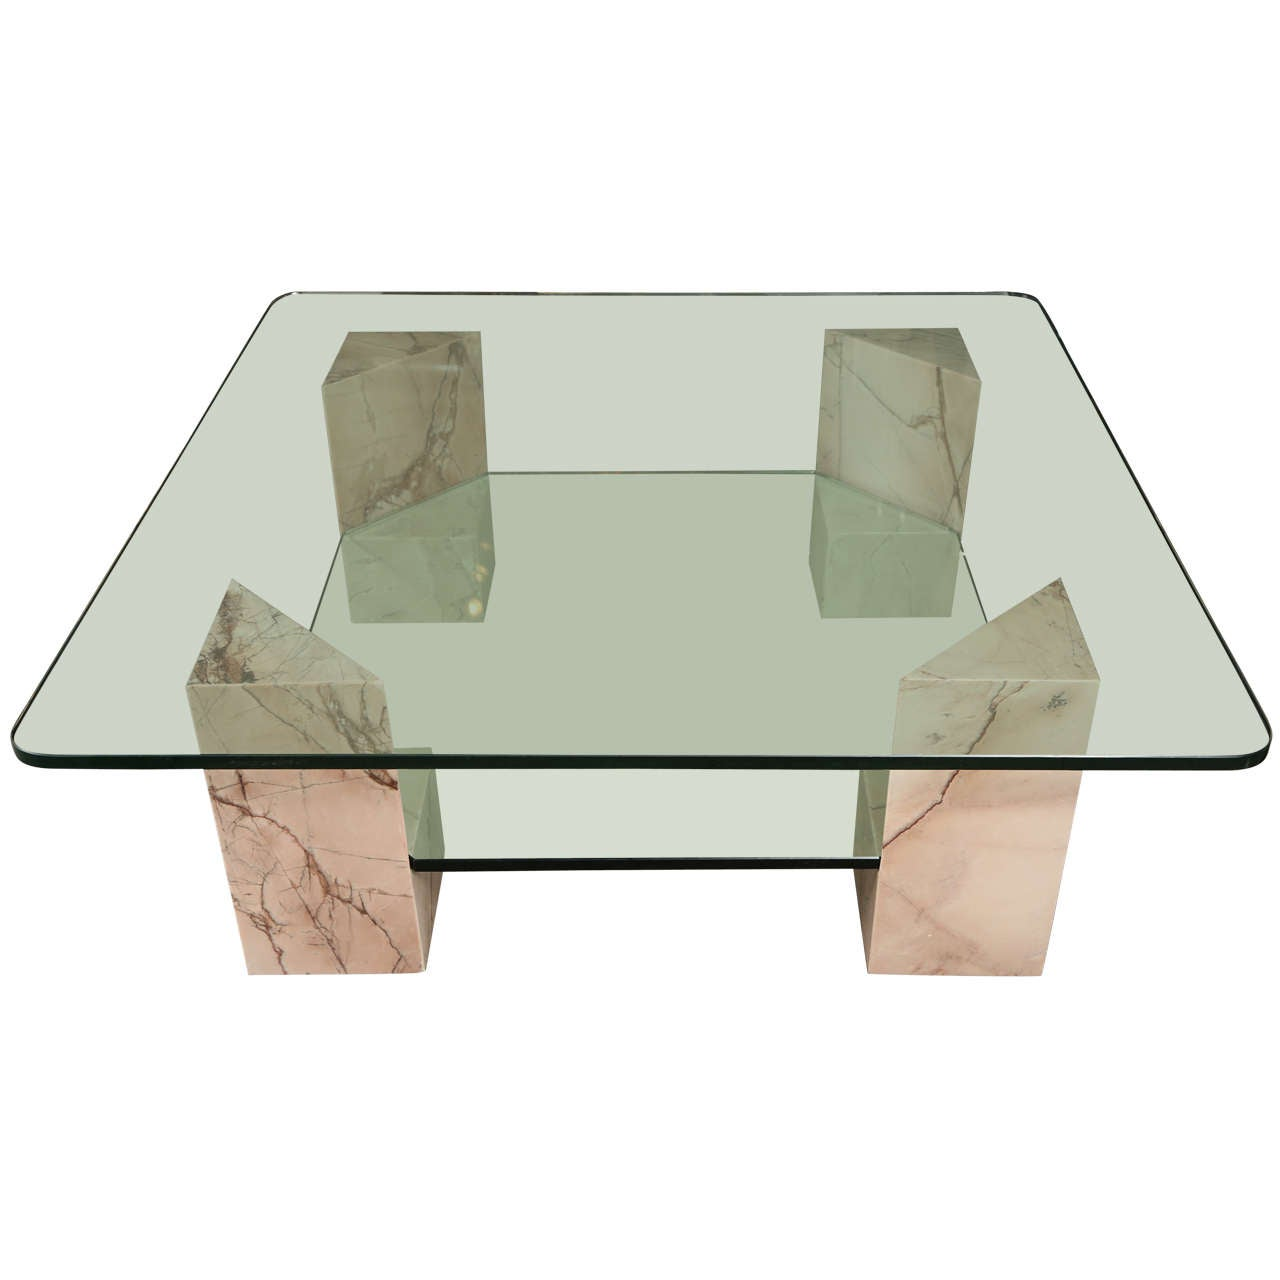 Interesting Coffee Table with Marble Corner Supports and Two